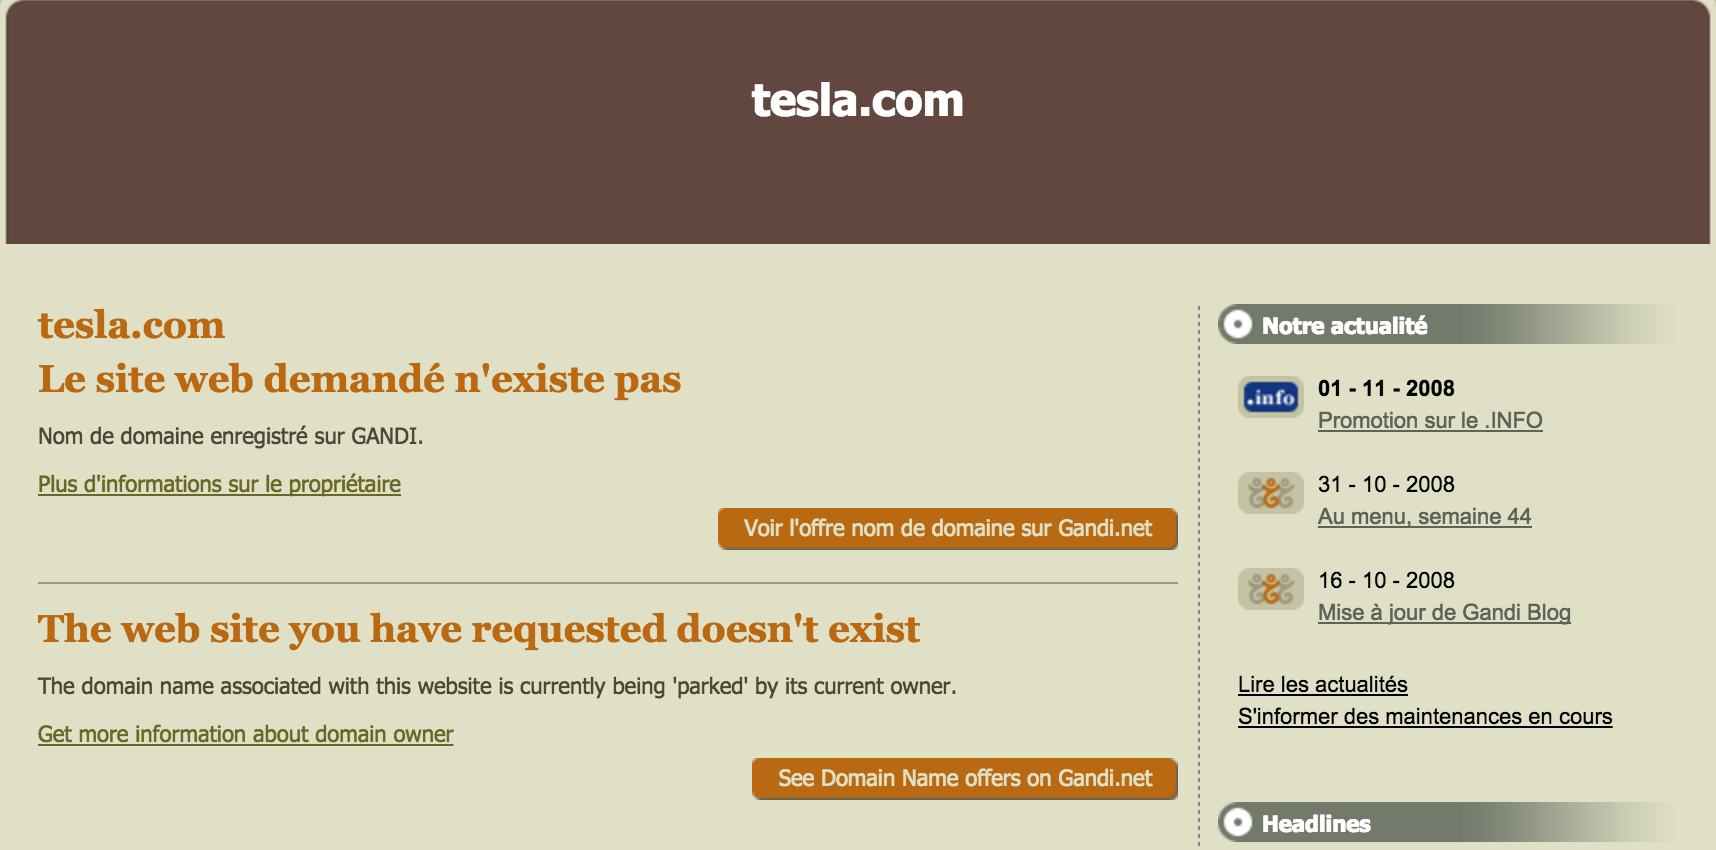 Tesla.com has gone largely unused for years. This is what the site looked like only a few years ago. (via the Internet Archive)